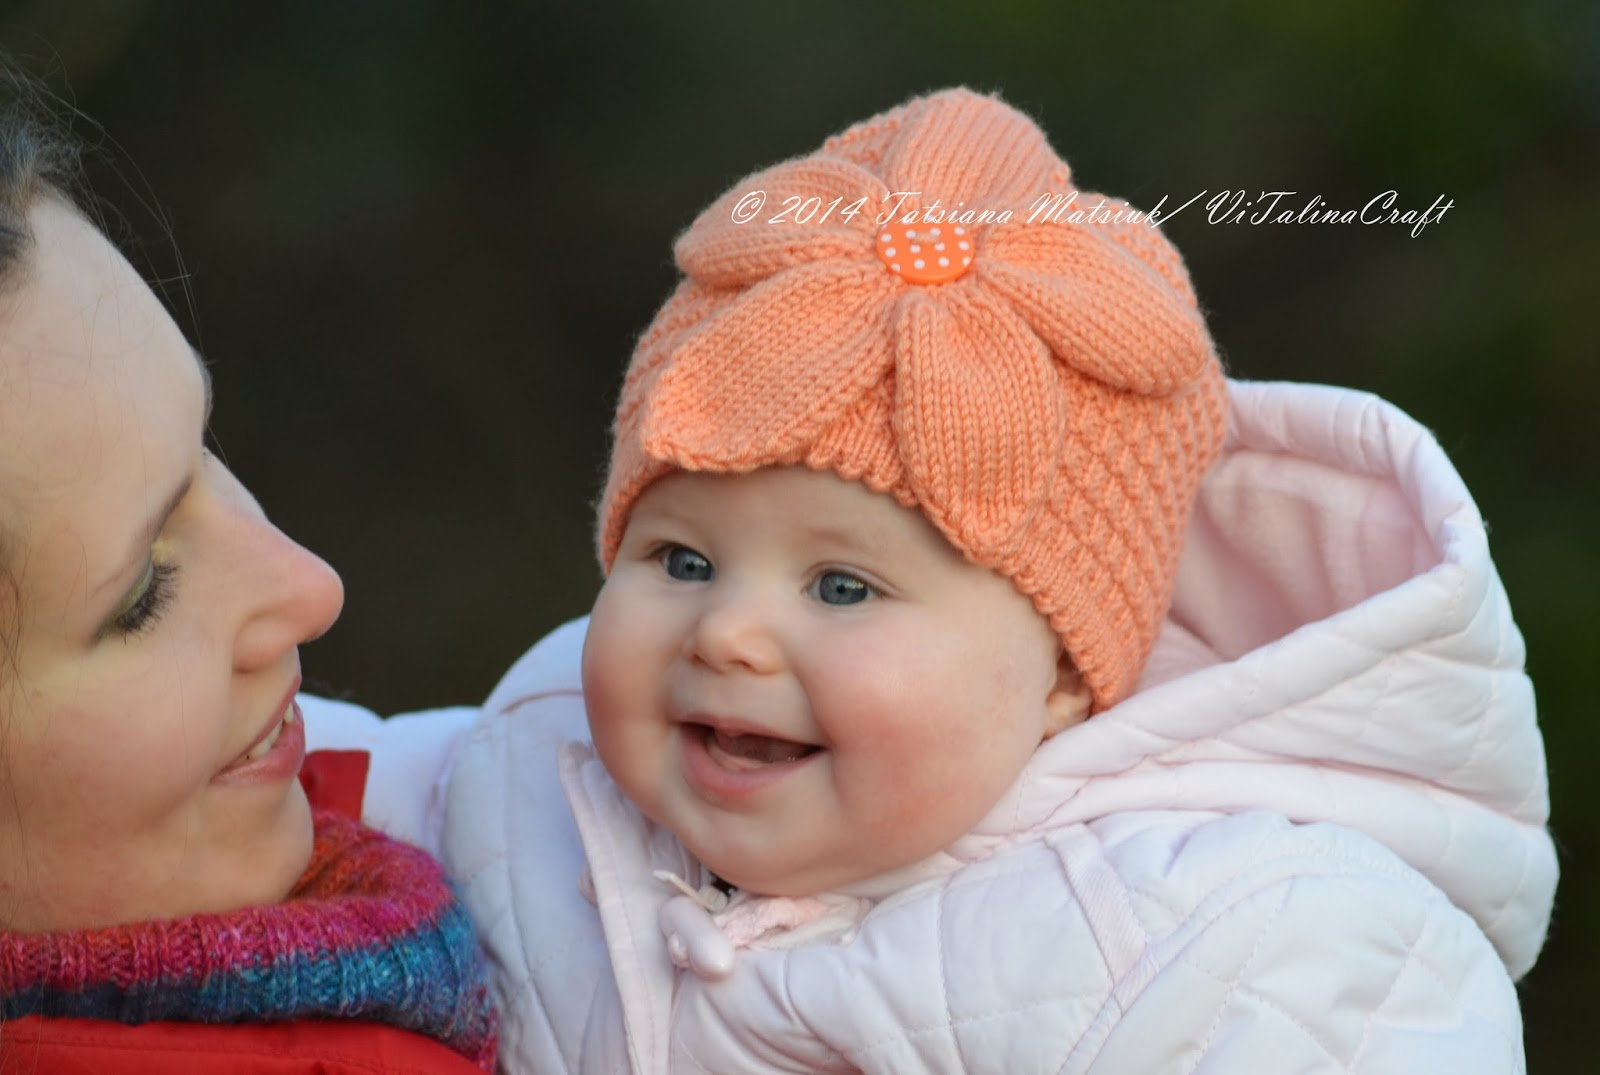 Knitting Pattern For Baby Hat With Flower : Peach Flower Baby Hat Knitting Pattern ViTalina Craft